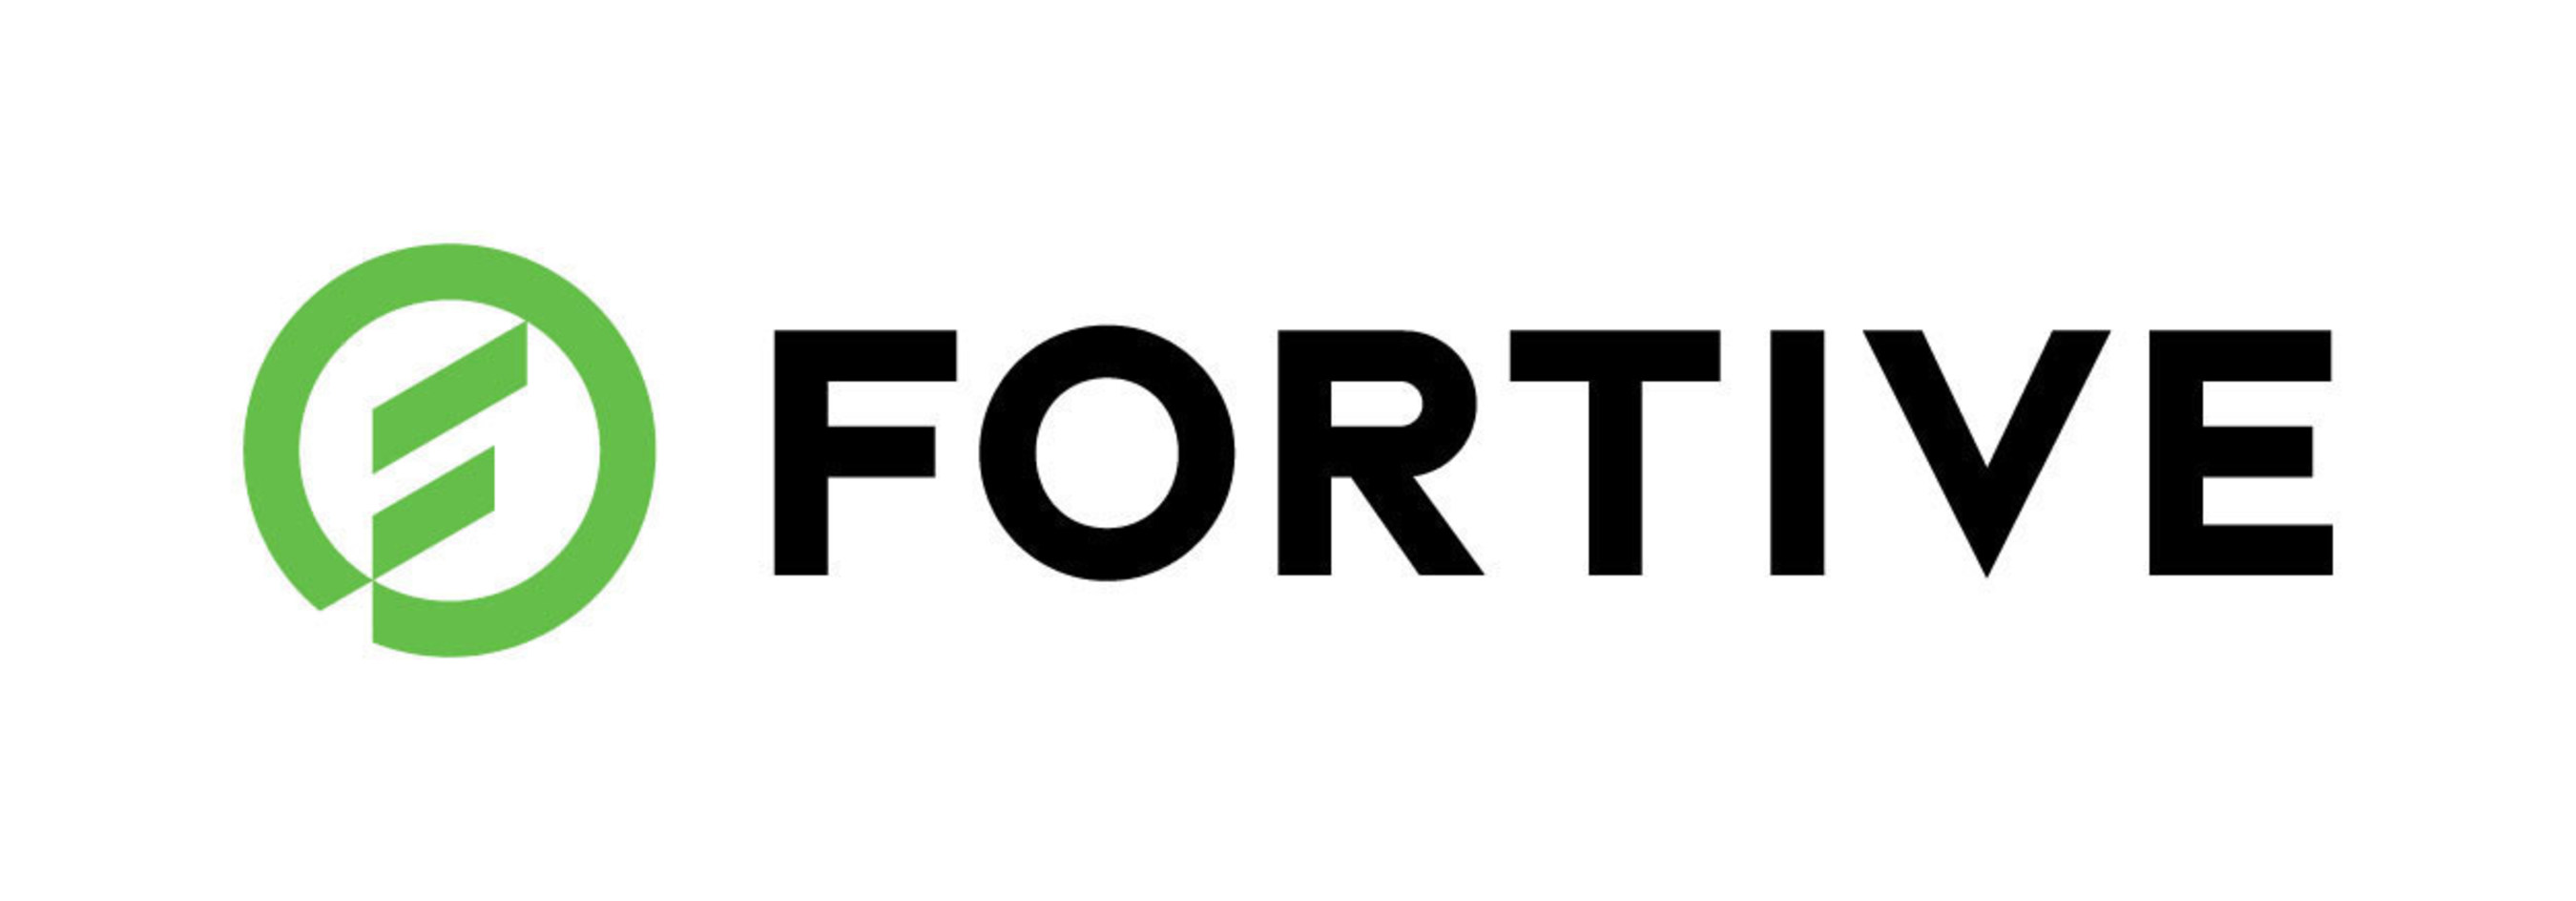 Fortive: www.fortive.com